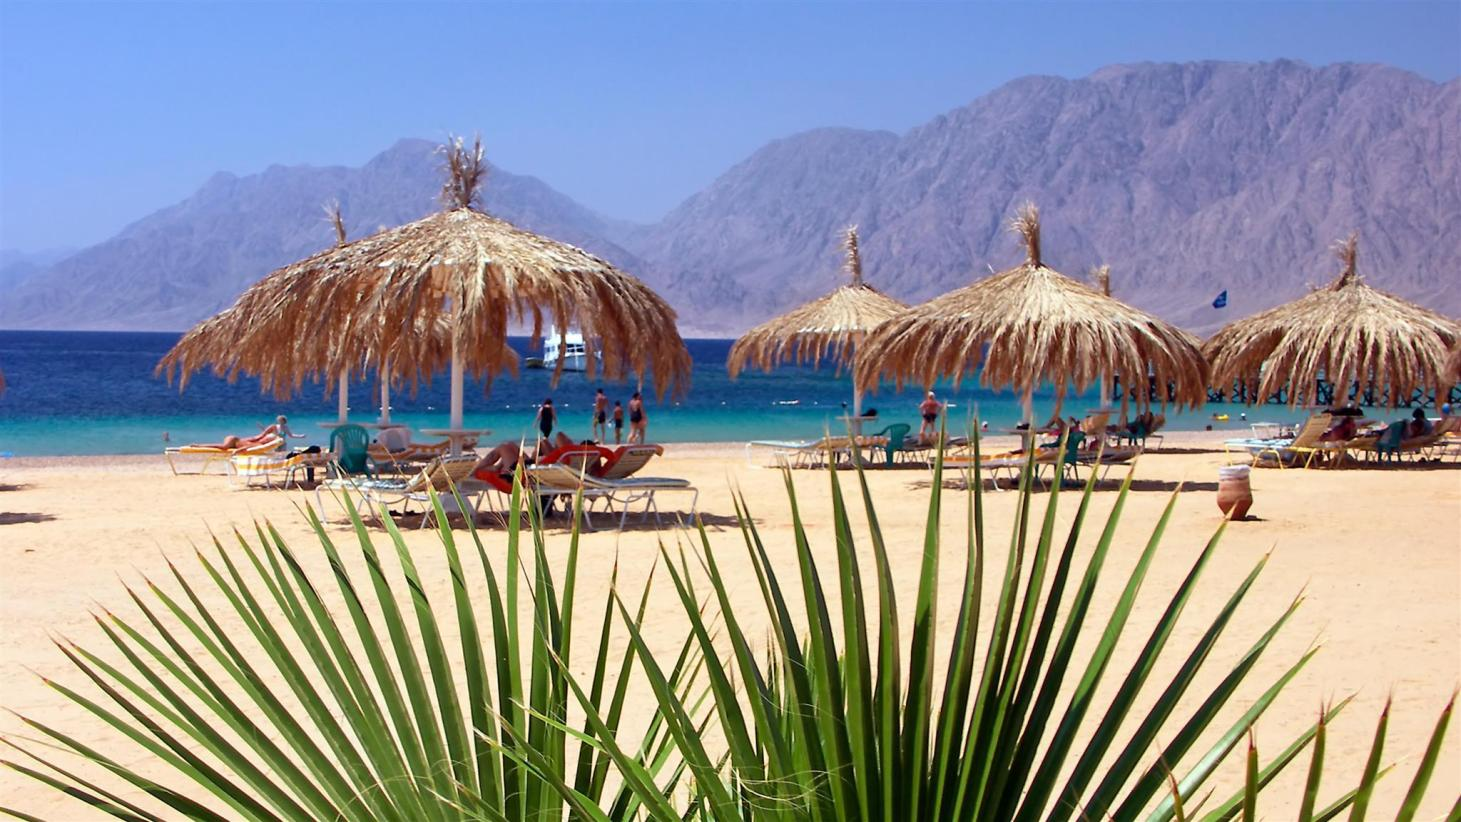 30 Best Nuweiba Hotels - Free Cancellation, 2021 Price Lists & Reviews of  the Best Hotels in Nuweiba, Egypt